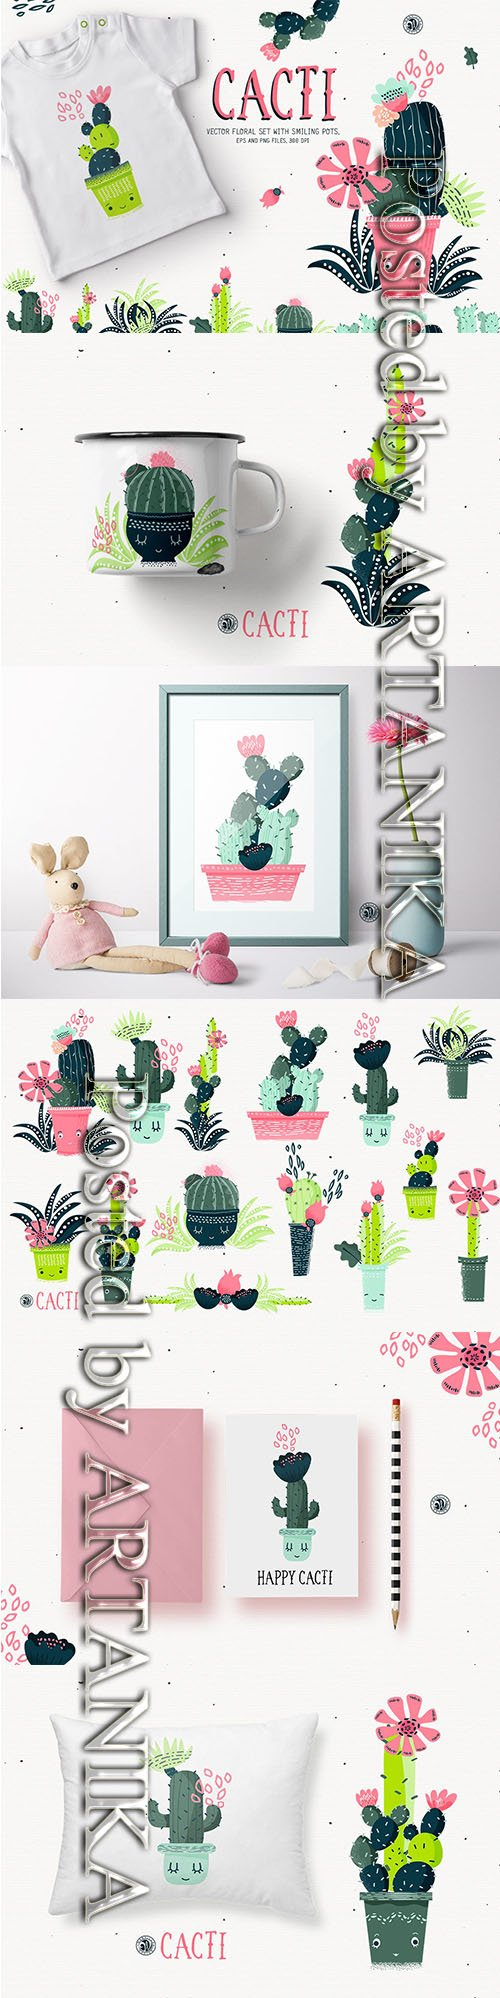 Cacti With Smiling Pots